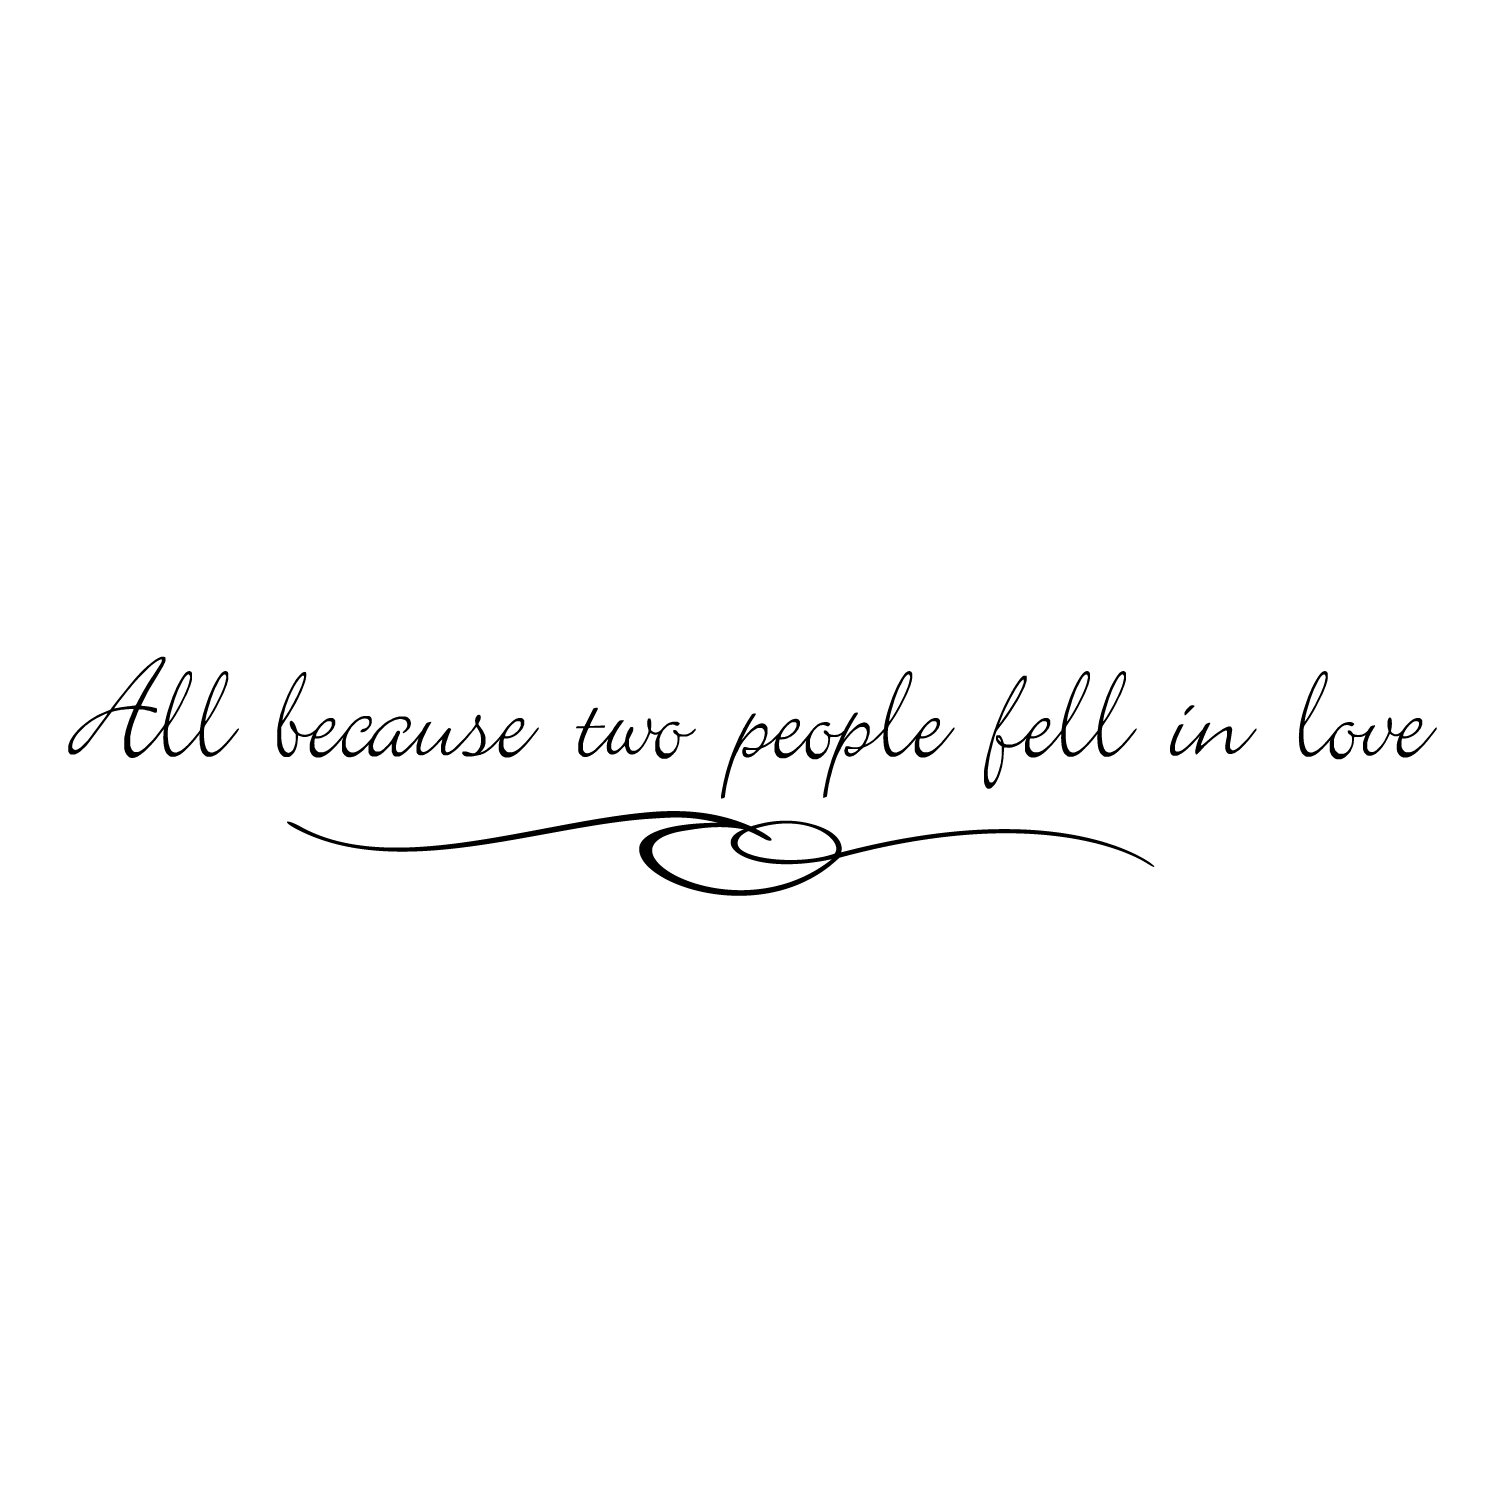 Firesidehome All Because Two People Fell In Love Wall Decal Wayfairca